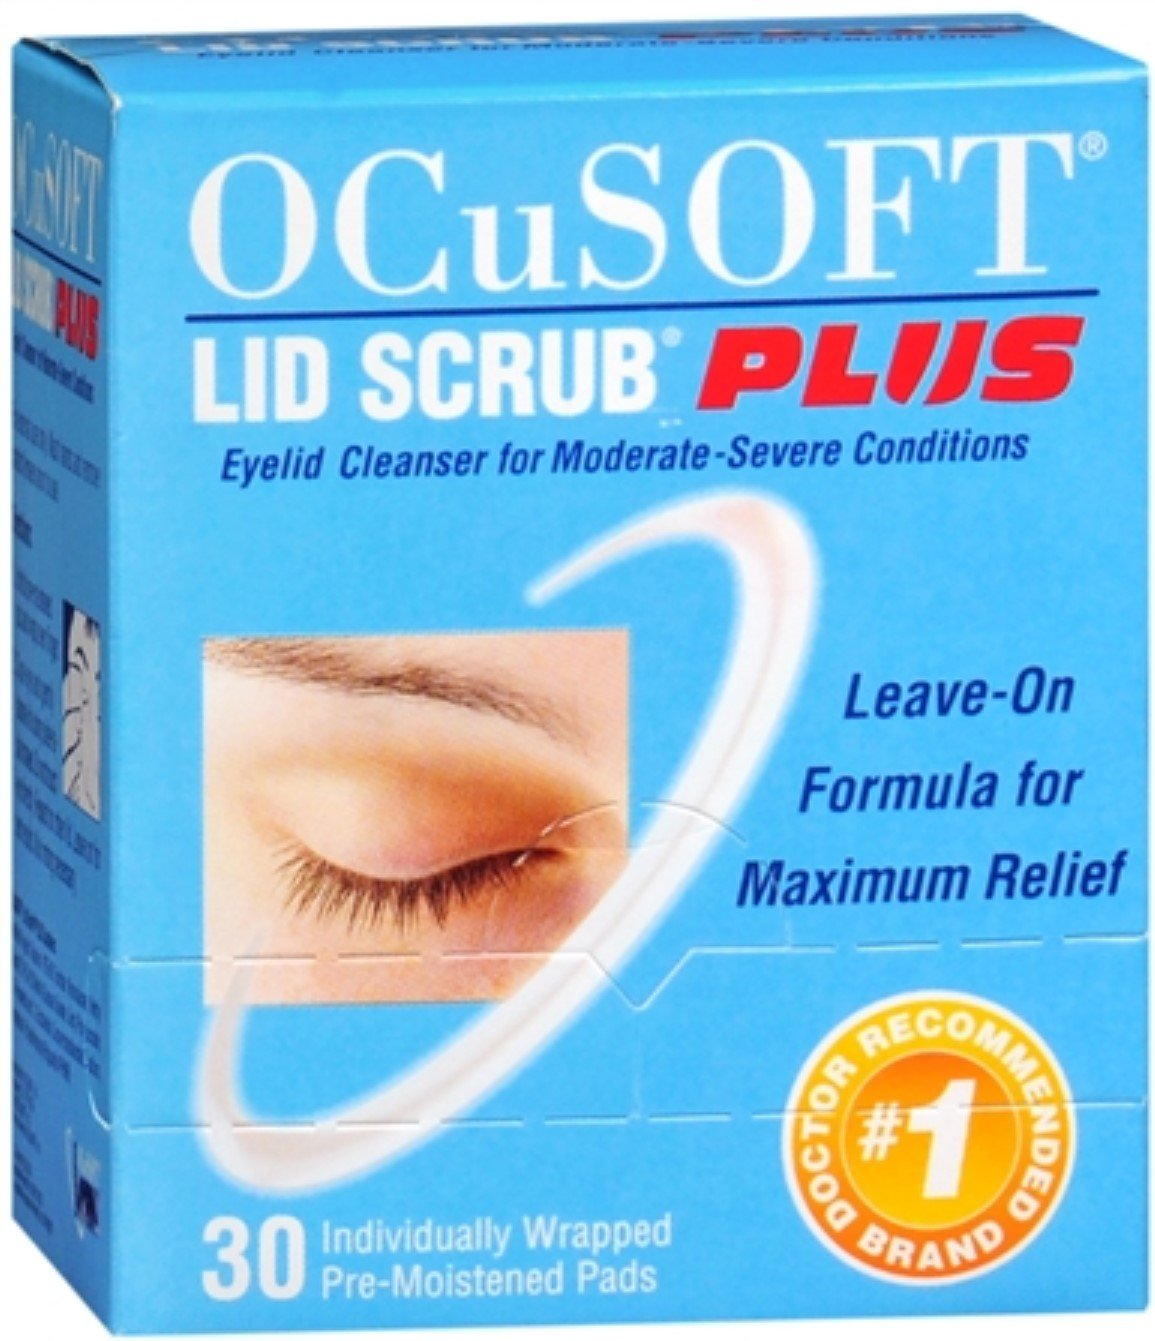 OCuSOFT Plus Eyelid Cleanser Pads 30 Each (Pack of 3)